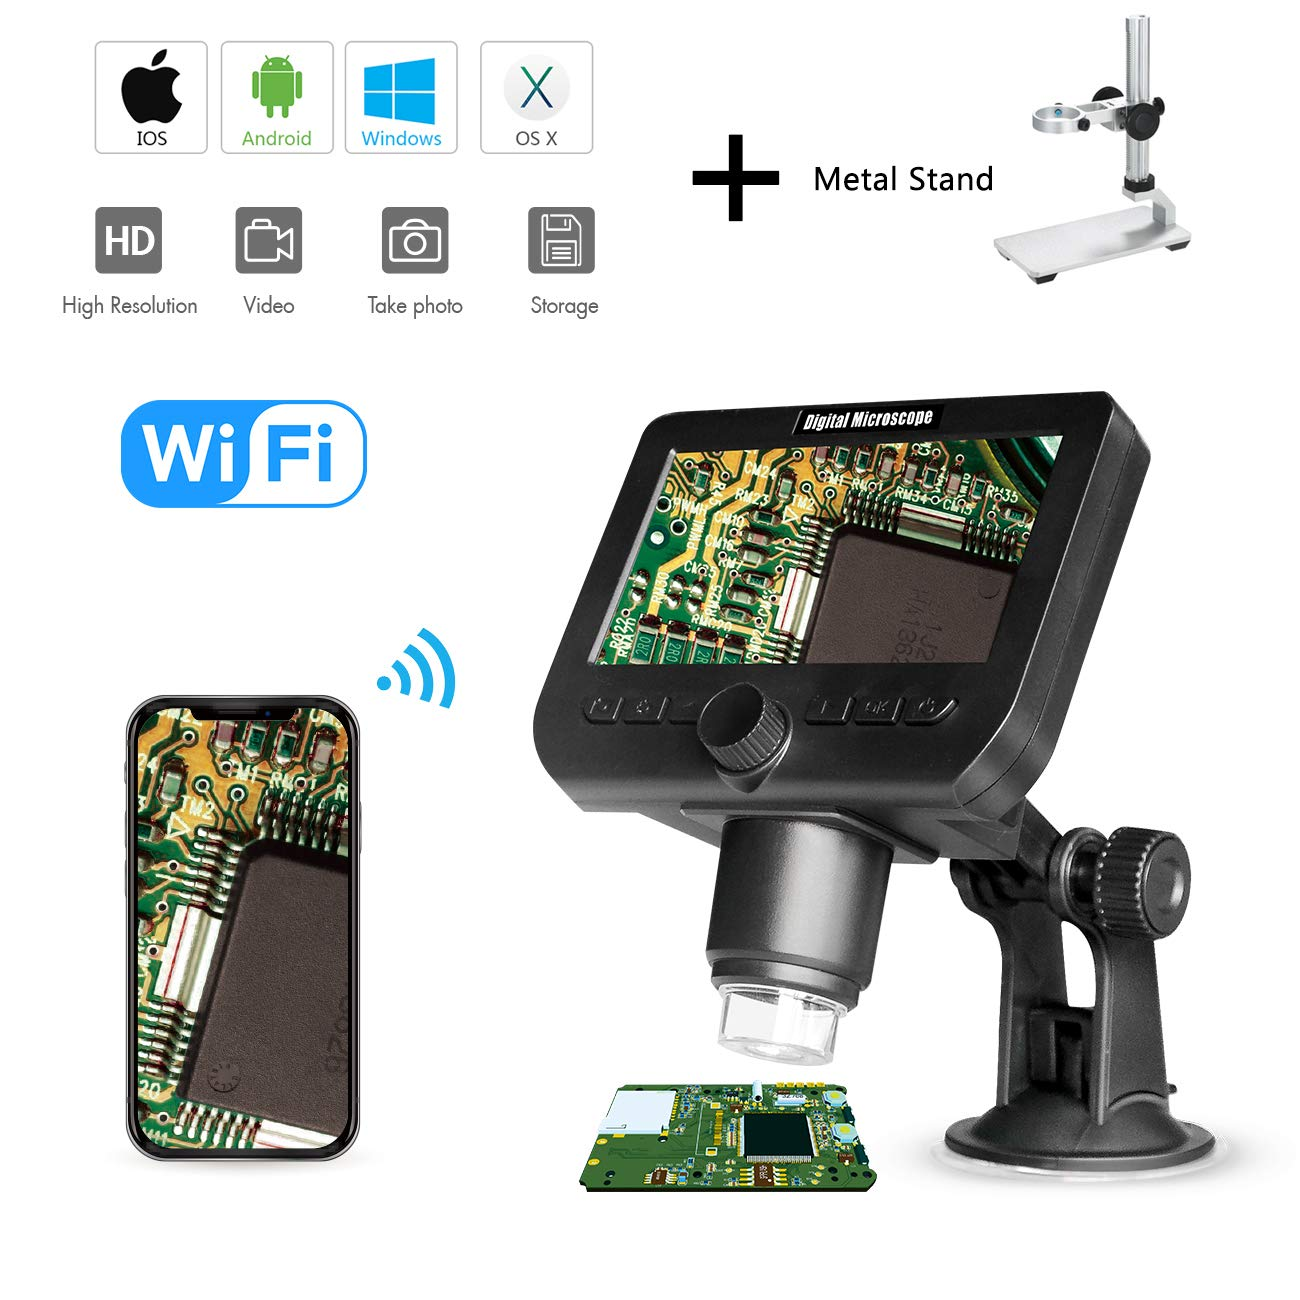 1000X LCD Digital Microscope, Bysameyee WiFi Wireless 4.3 Inch 1080P Portable Magnifier Zoom Camera with 8 LED Lights Rechargeable Battery for Coins Collection Repairing Soldering